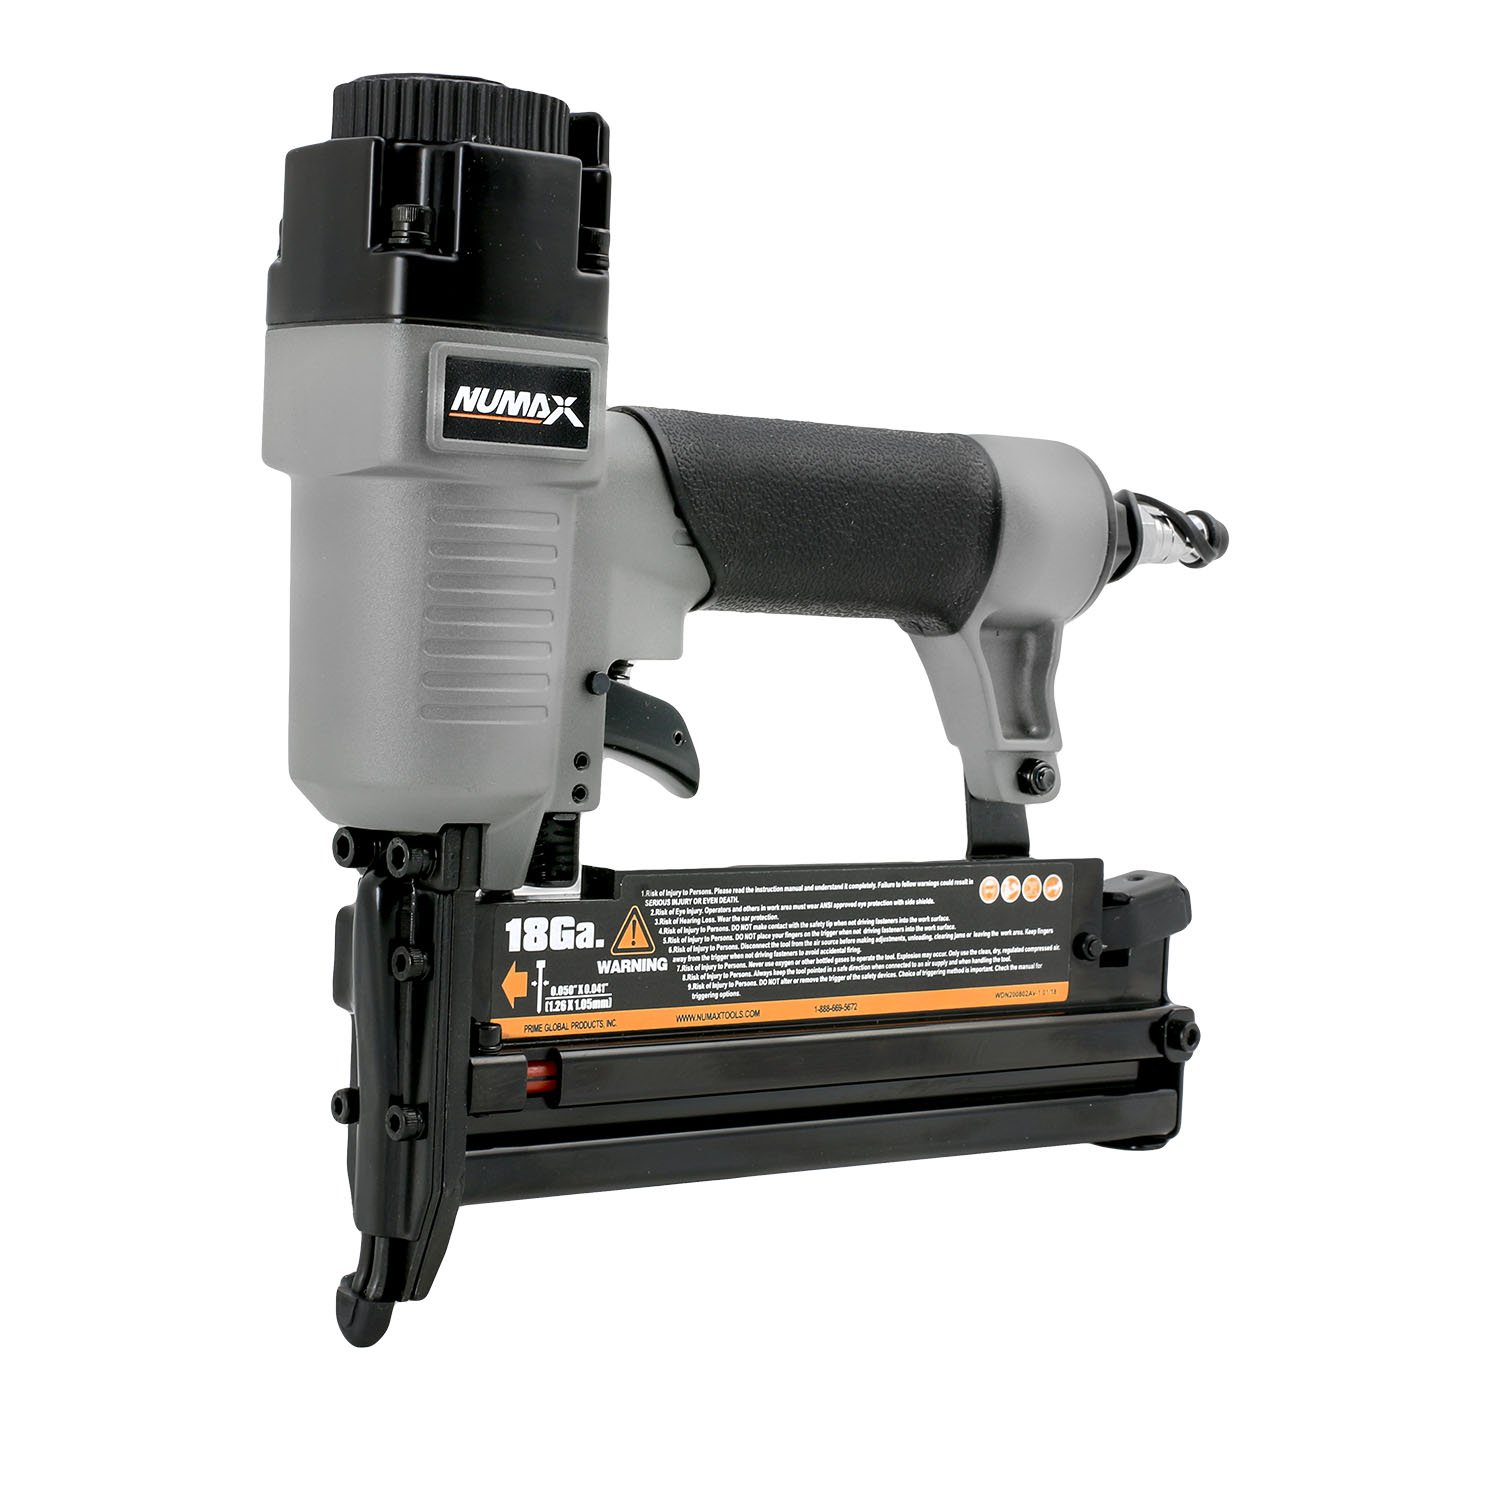 NuMax SL31 Pneumatic 3-in-1 16-Gauge and 18-Gauge 2 Finish Nailer and Stapler Ergonomic and Lightweight Nail Gun with No Mar Tip for Finish Nails, Brad Nails, and Staples